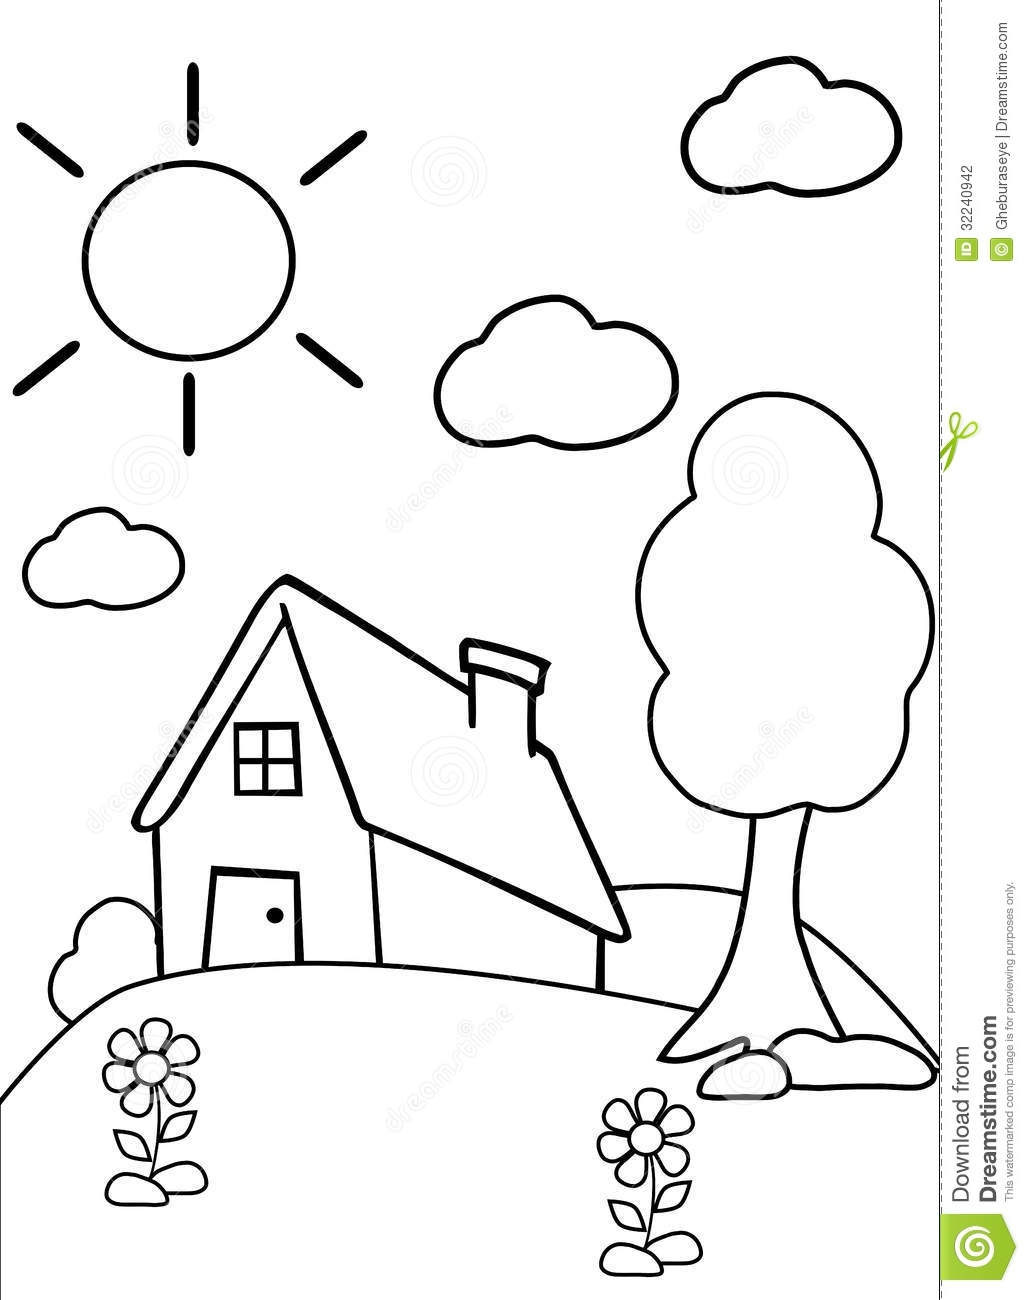 tree house coloring pages - stock photography color house illustration children who can colors like most learning to stay margins image